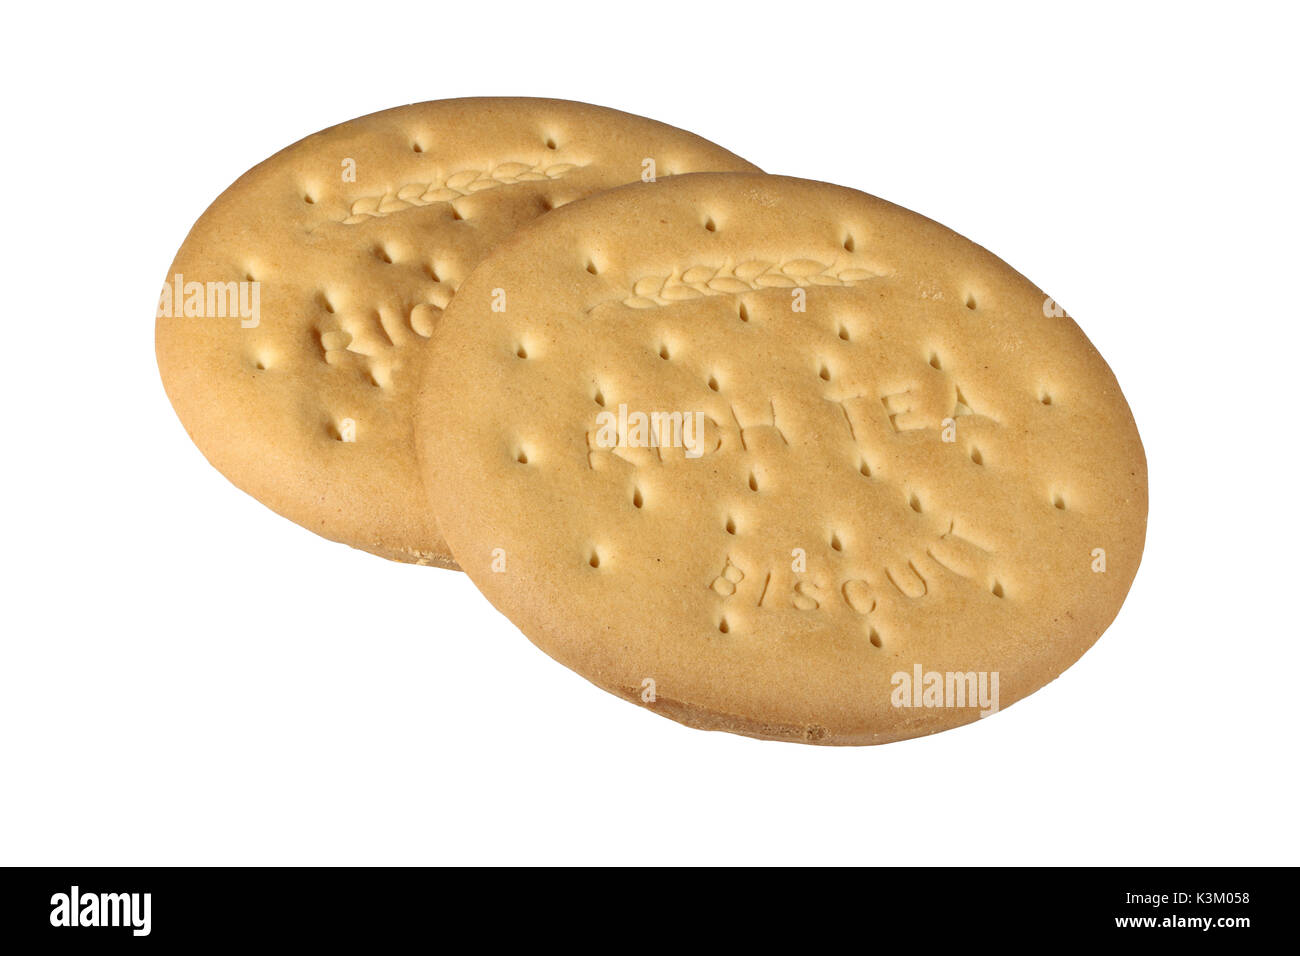 Two rich tea biscuits isolated on a white background - Stock Image